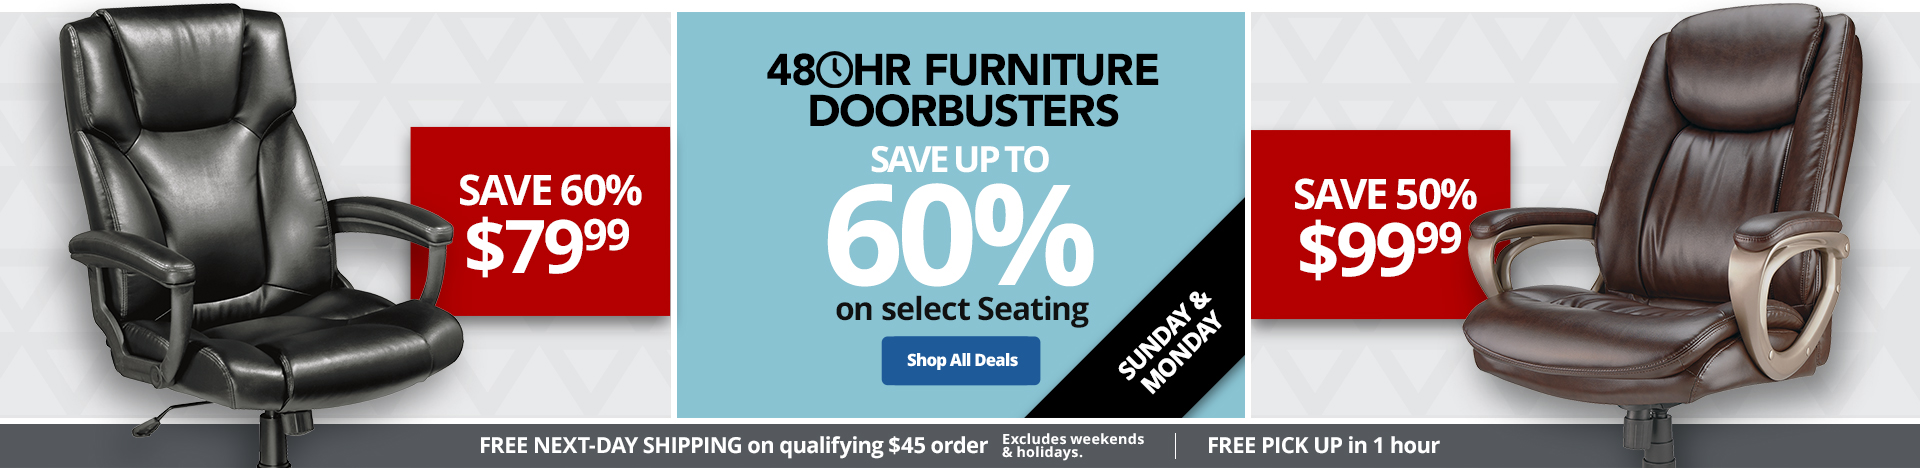 Save Up To 60% On Select Seating